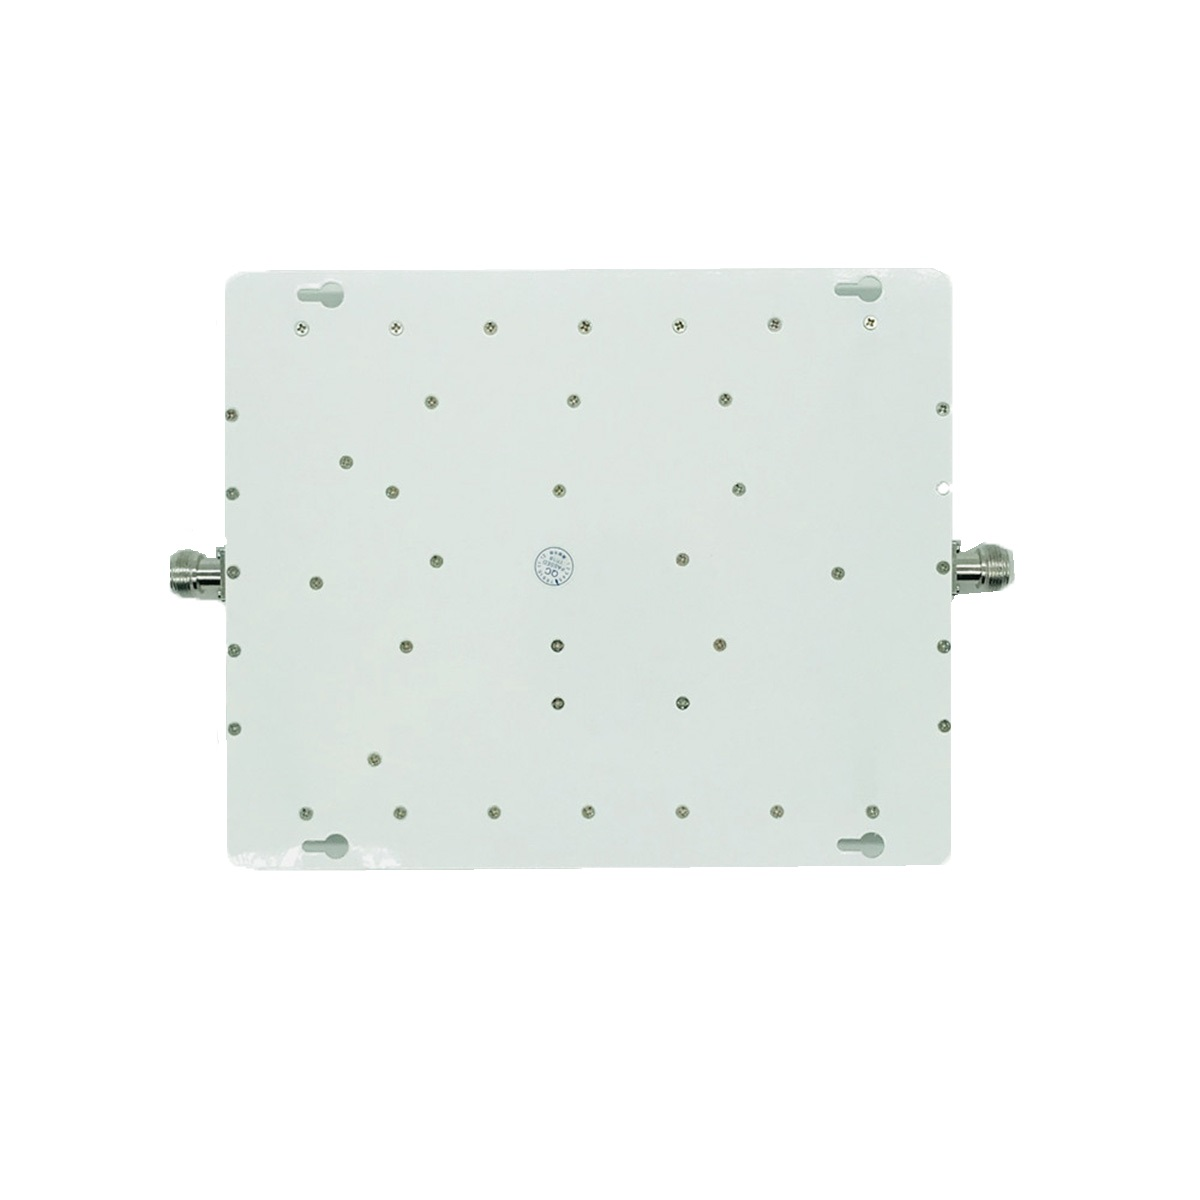 GSM DCS 3G 900/1800/2100MHz Mobile Phone Signal Booster Amplifier Repeater 2G 3G 4G Network